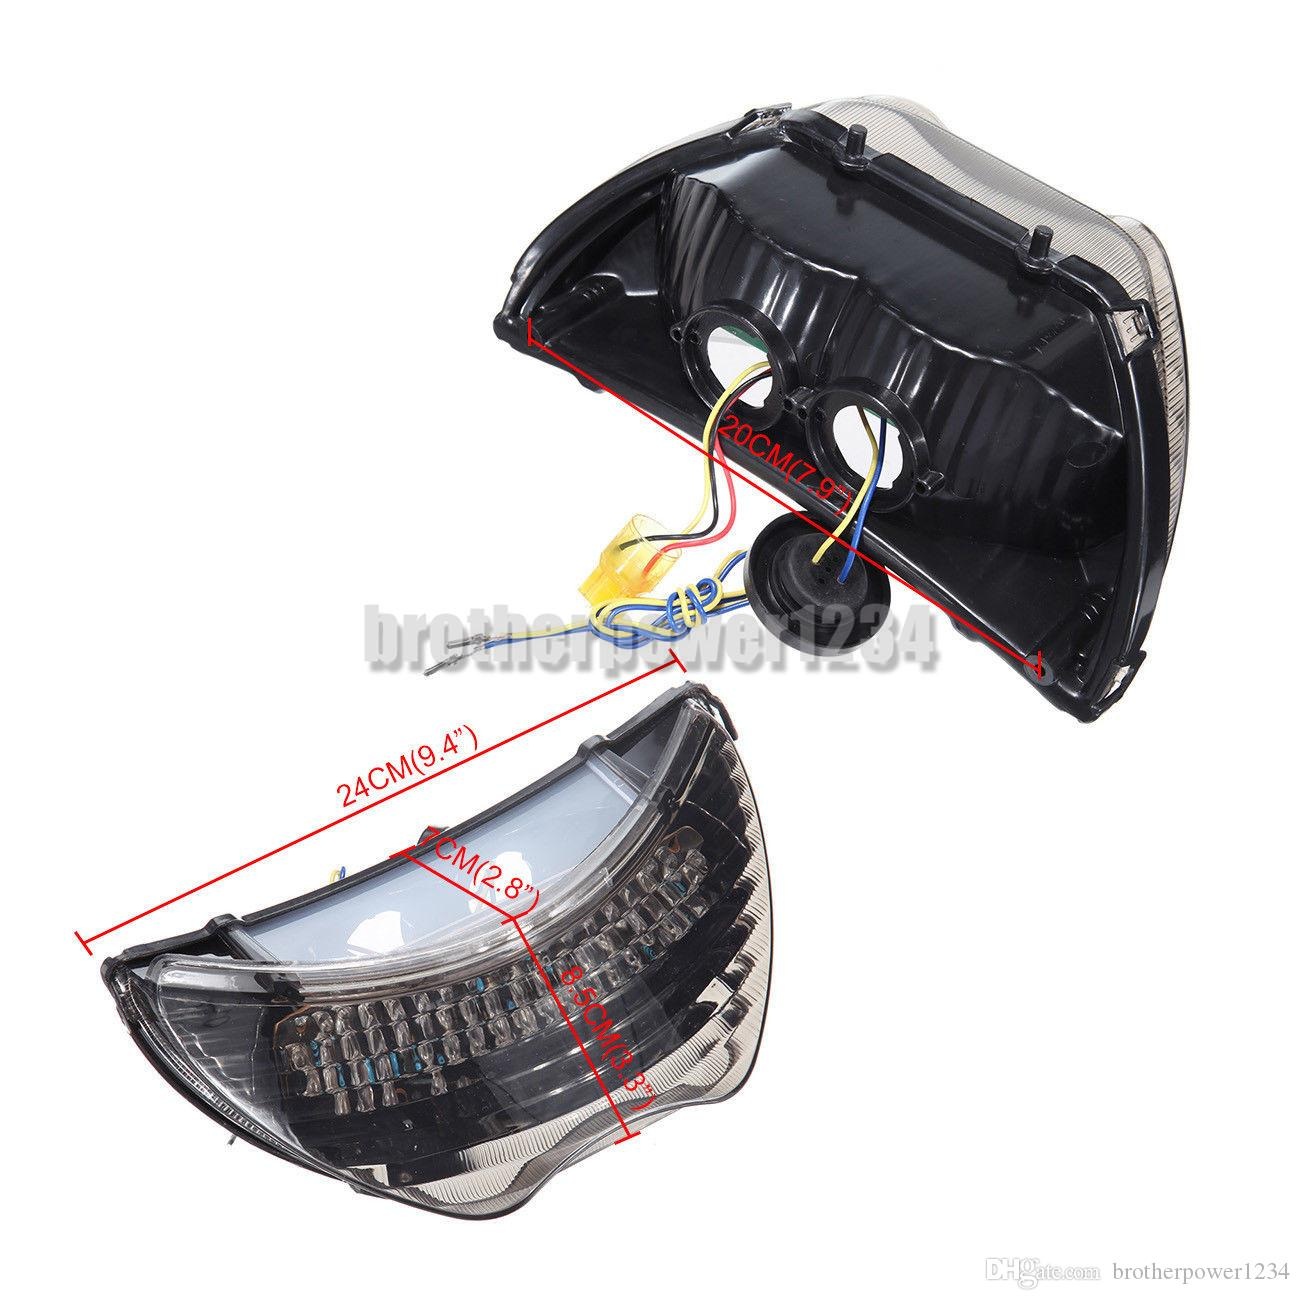 Smoke LED tail light with integrated turn signals For Honda CBR900RR CBR600 F4 F4i 2004 05 2006